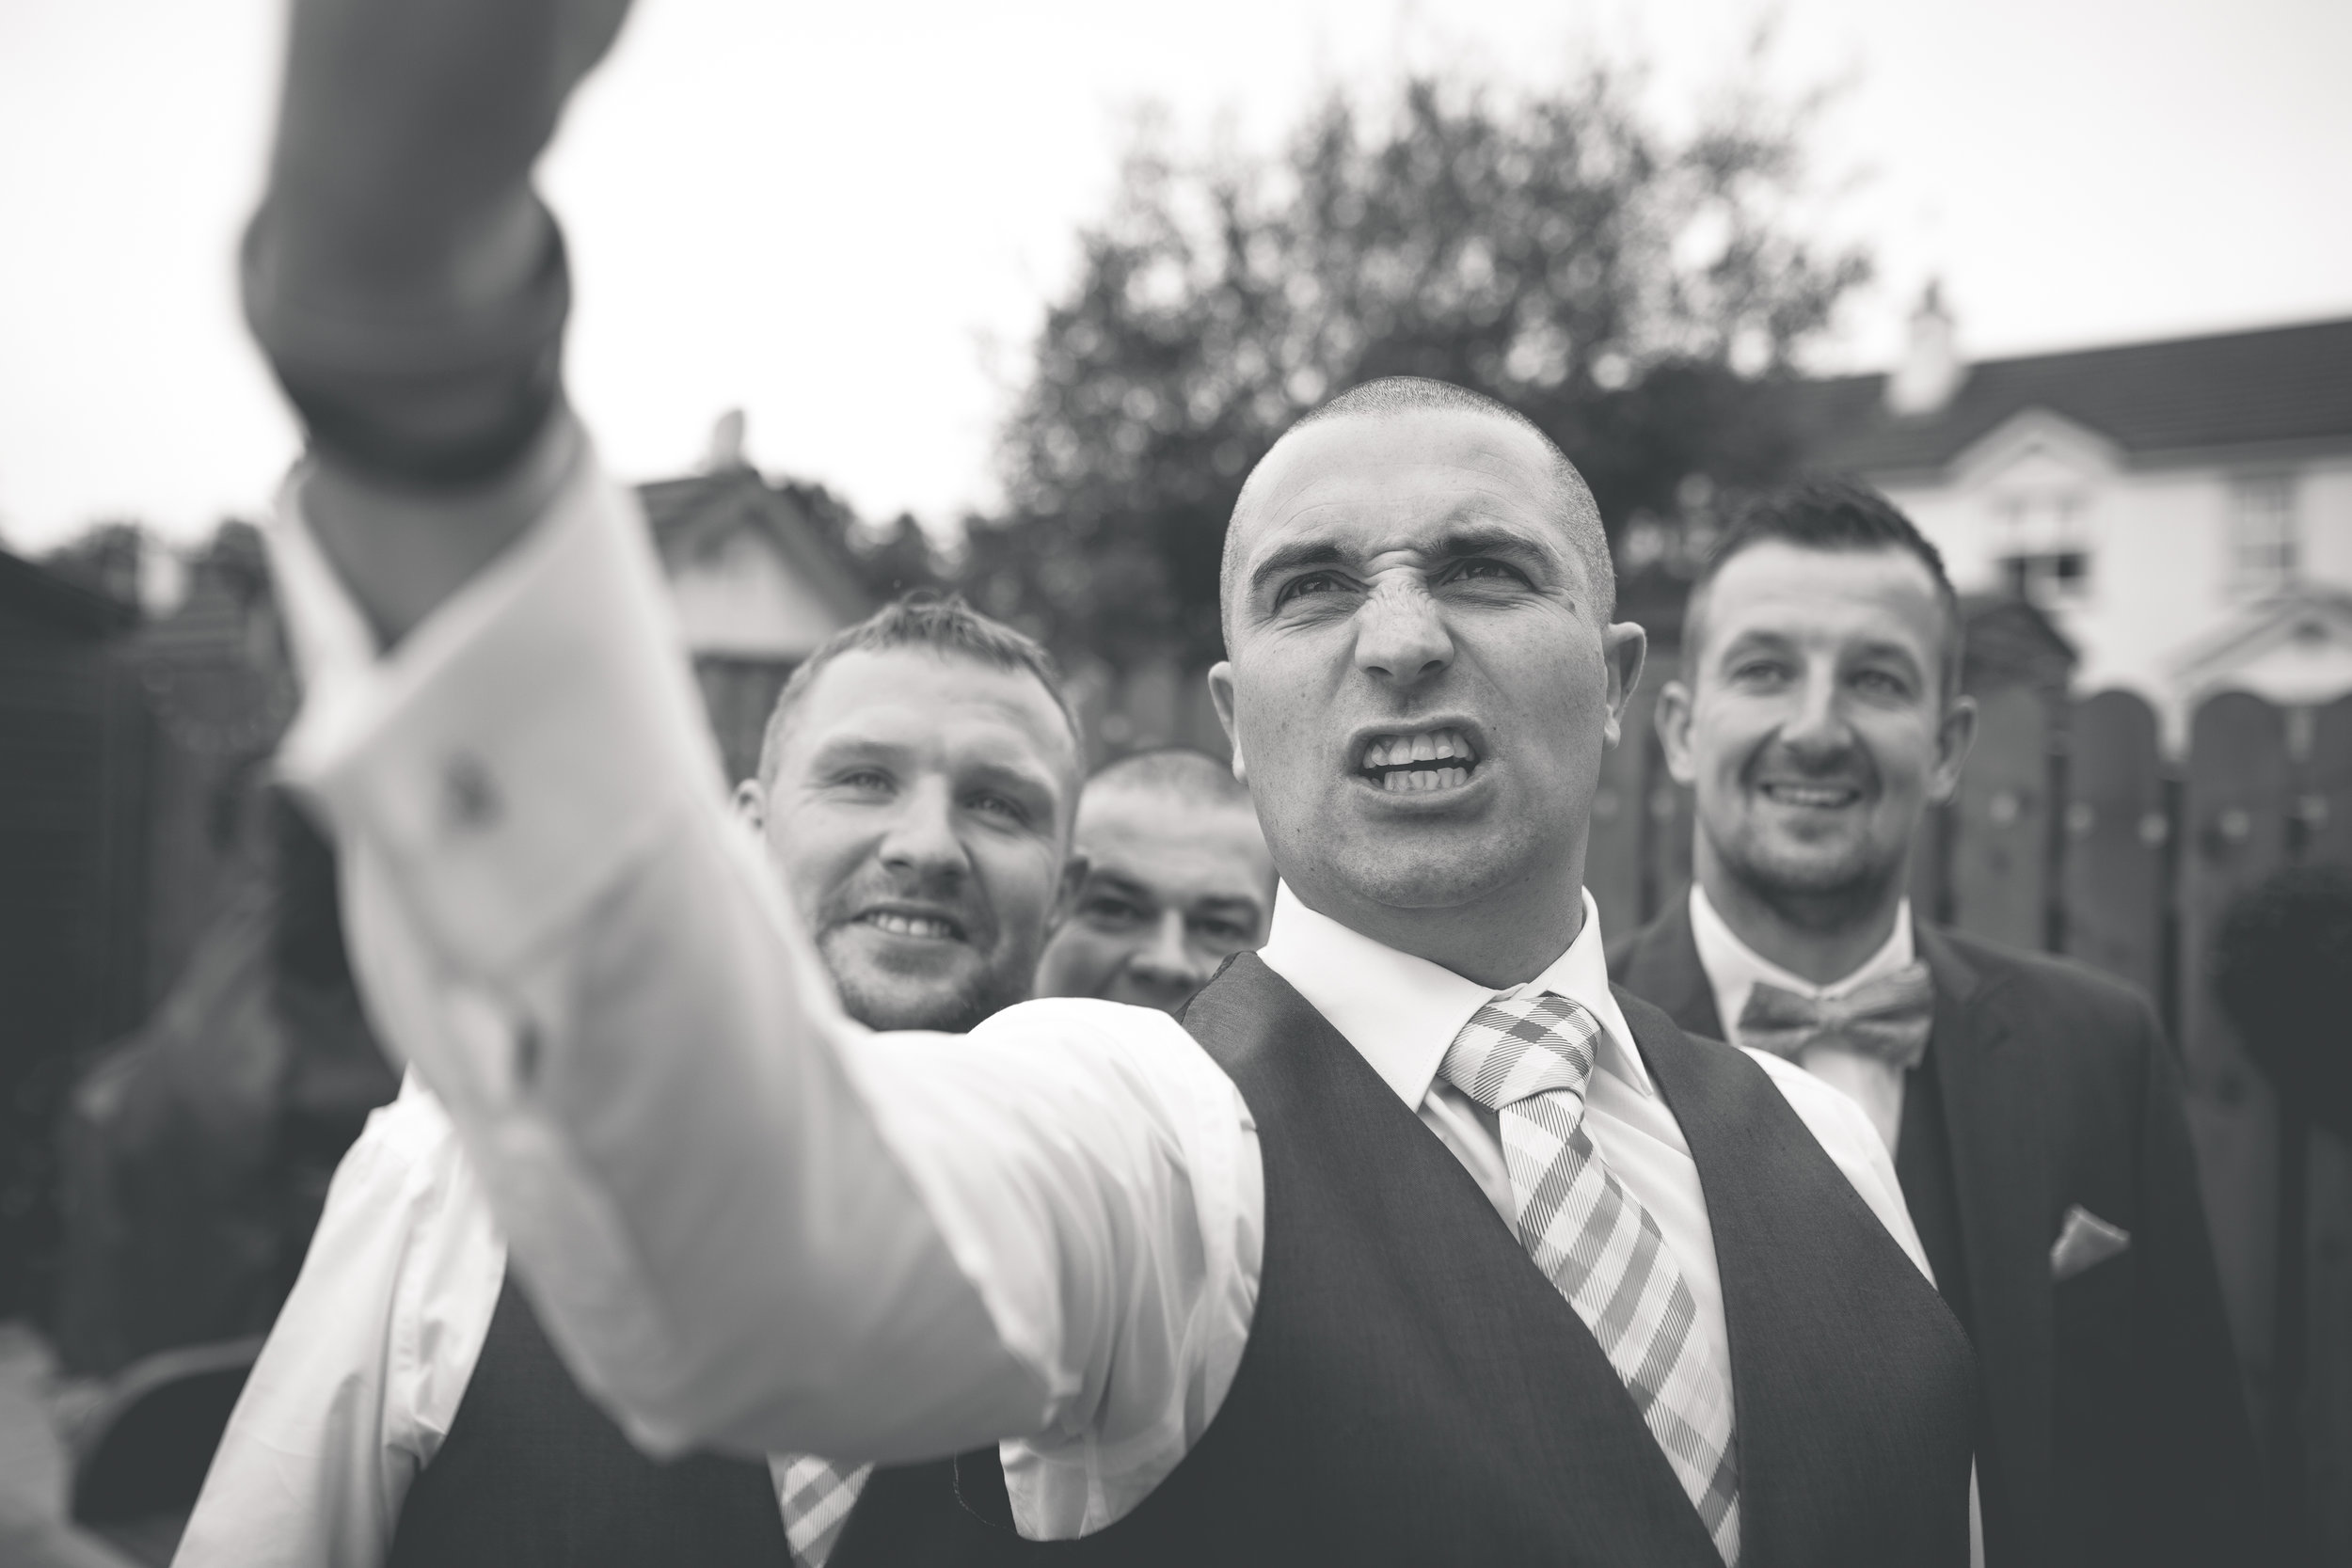 Antoinette & Stephen - Groom & Groomsmen | Brian McEwan Photography | Wedding Photographer Northern Ireland 69.jpg